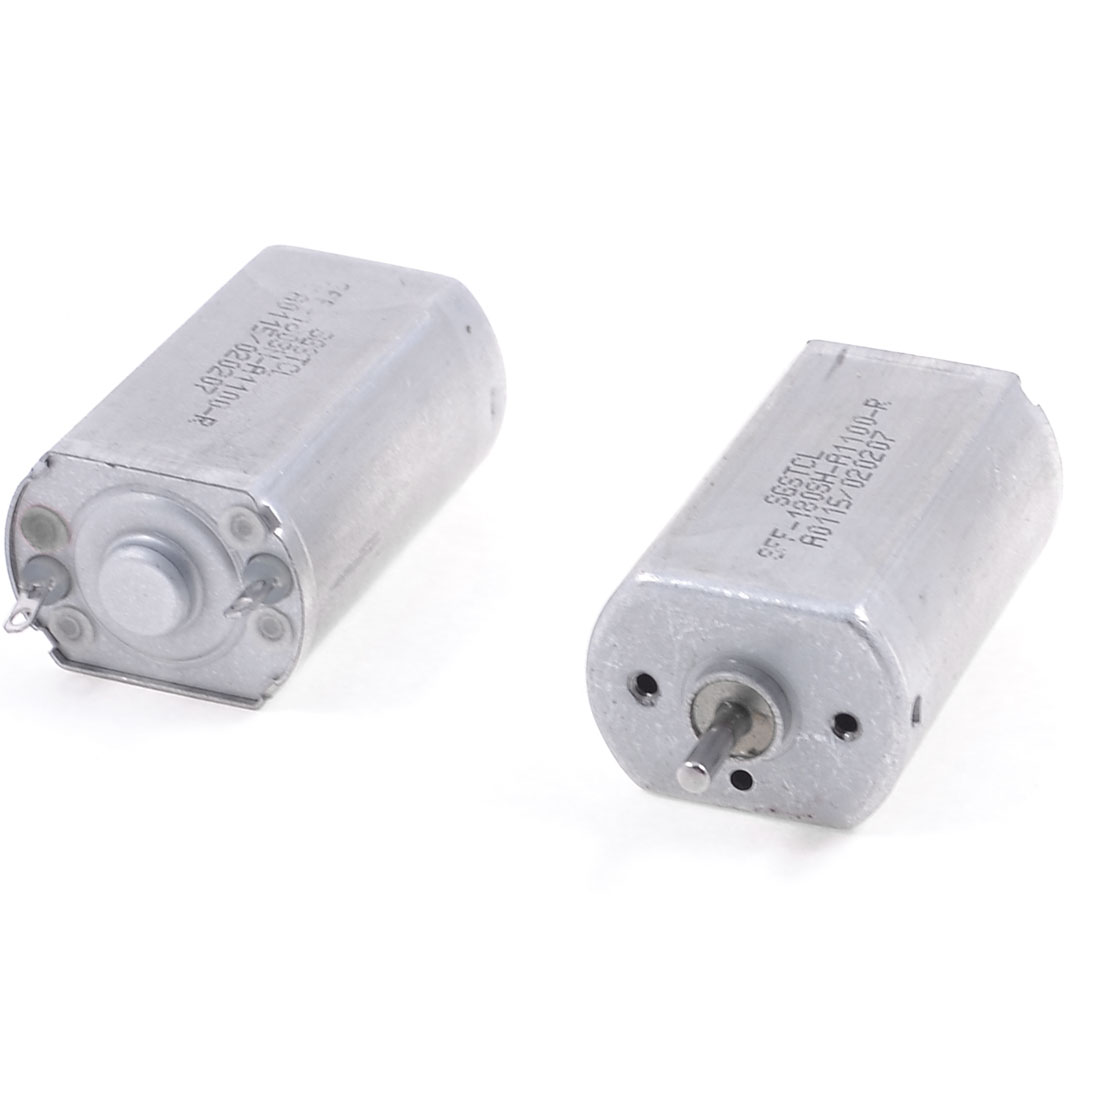 2-Pcs-DC-6V-Magnetic-Micro-Motor-FF-180SH-for-Model-Airplane-DIY-Toys